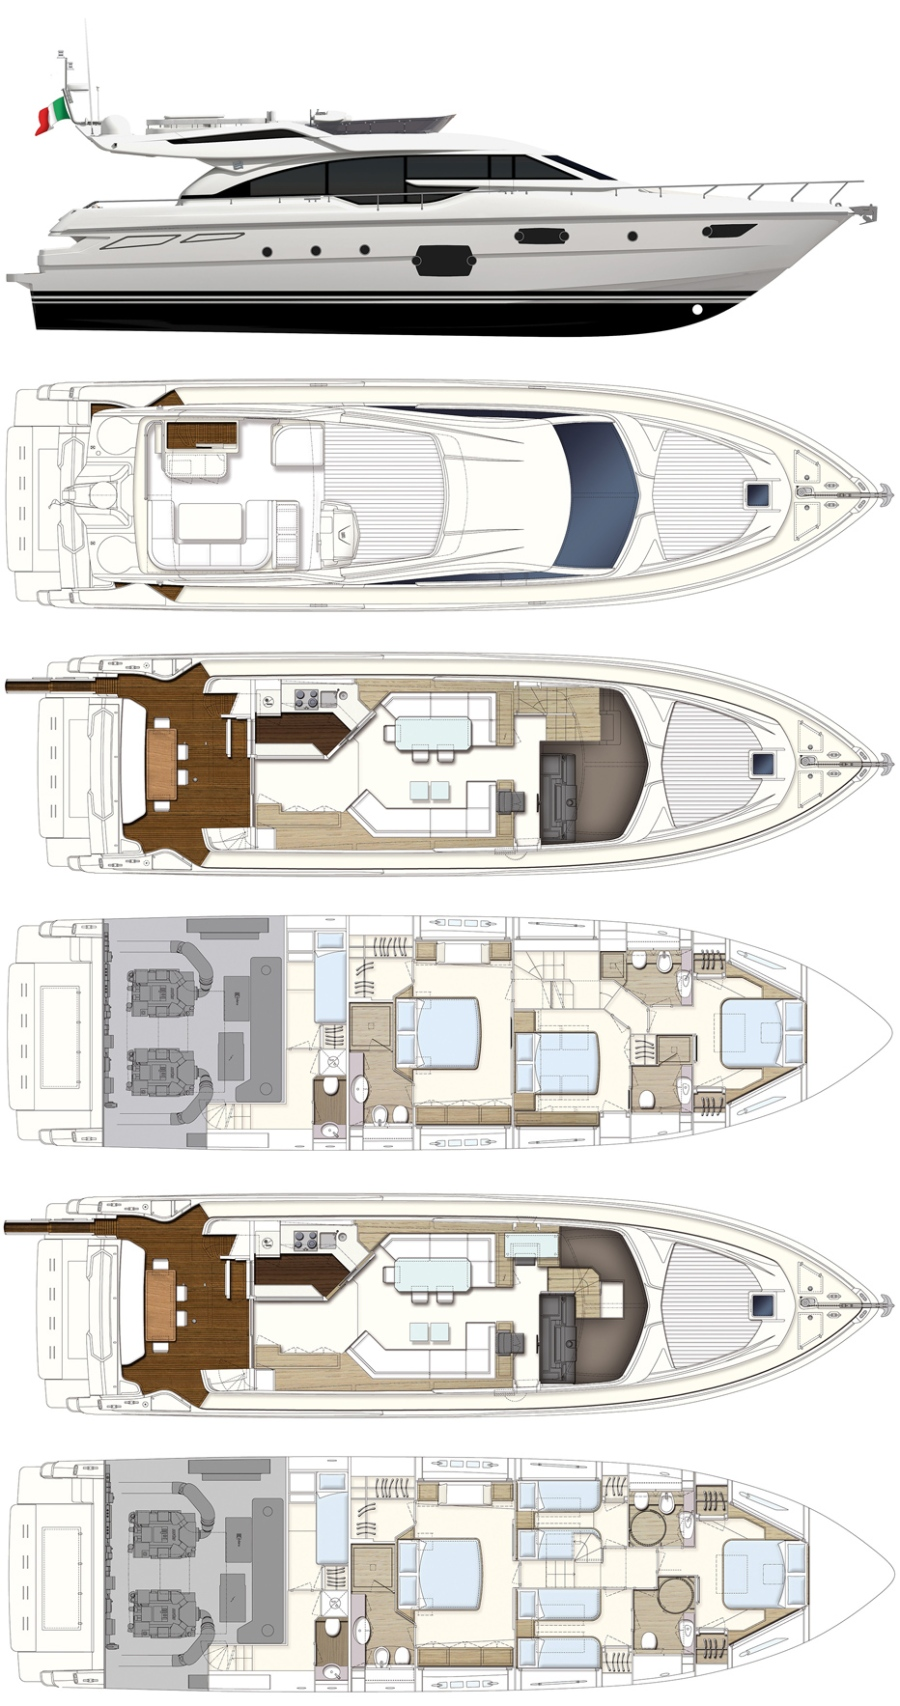 ferretti-690-2013-layout-plans-general-arrangement.jpg